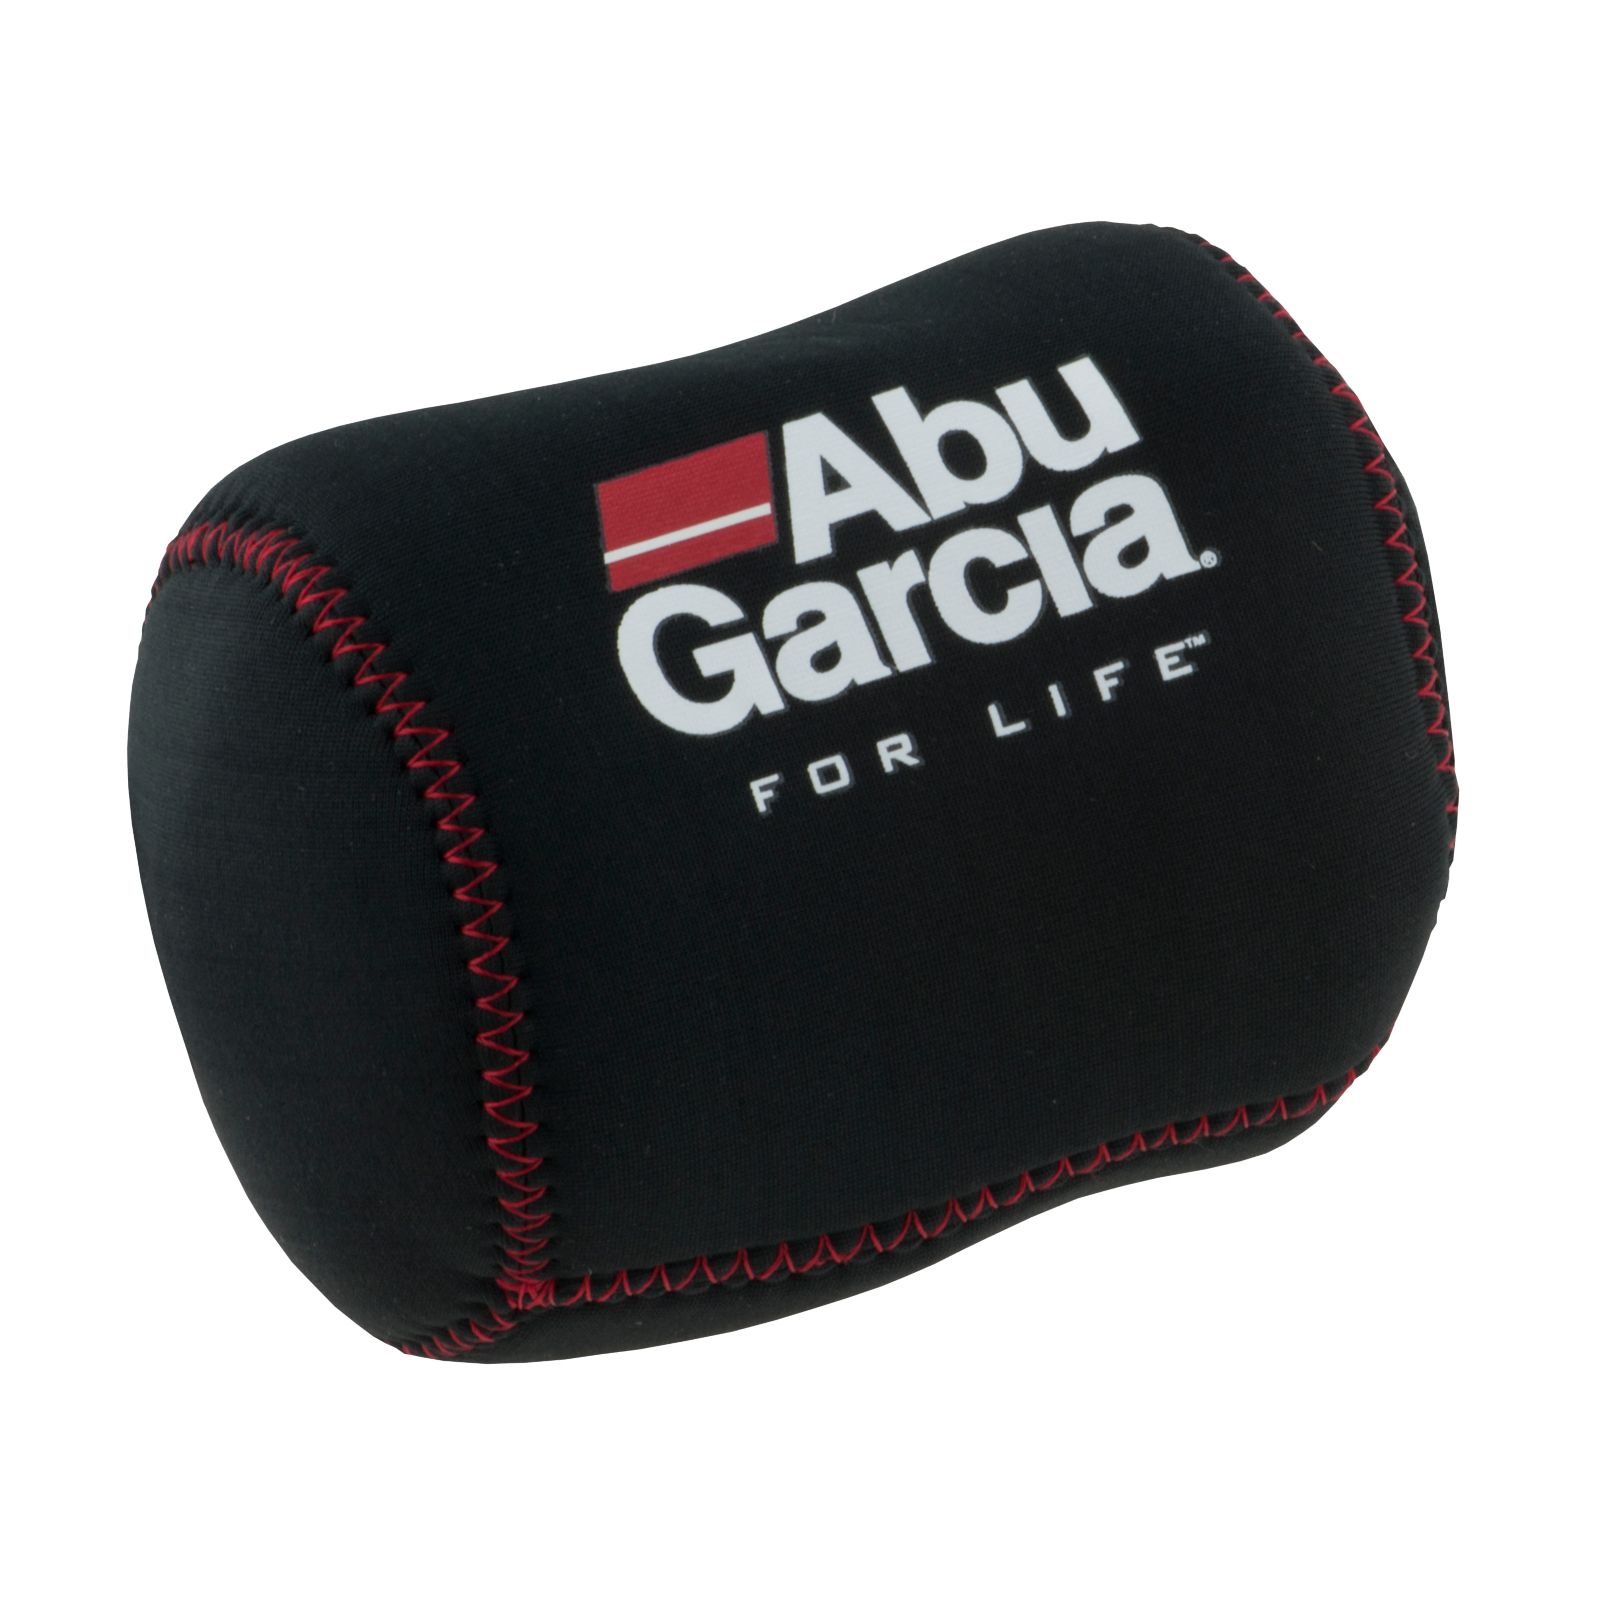 Abu Garcia Revo Shop Neoprene Covers Maumee Tackle